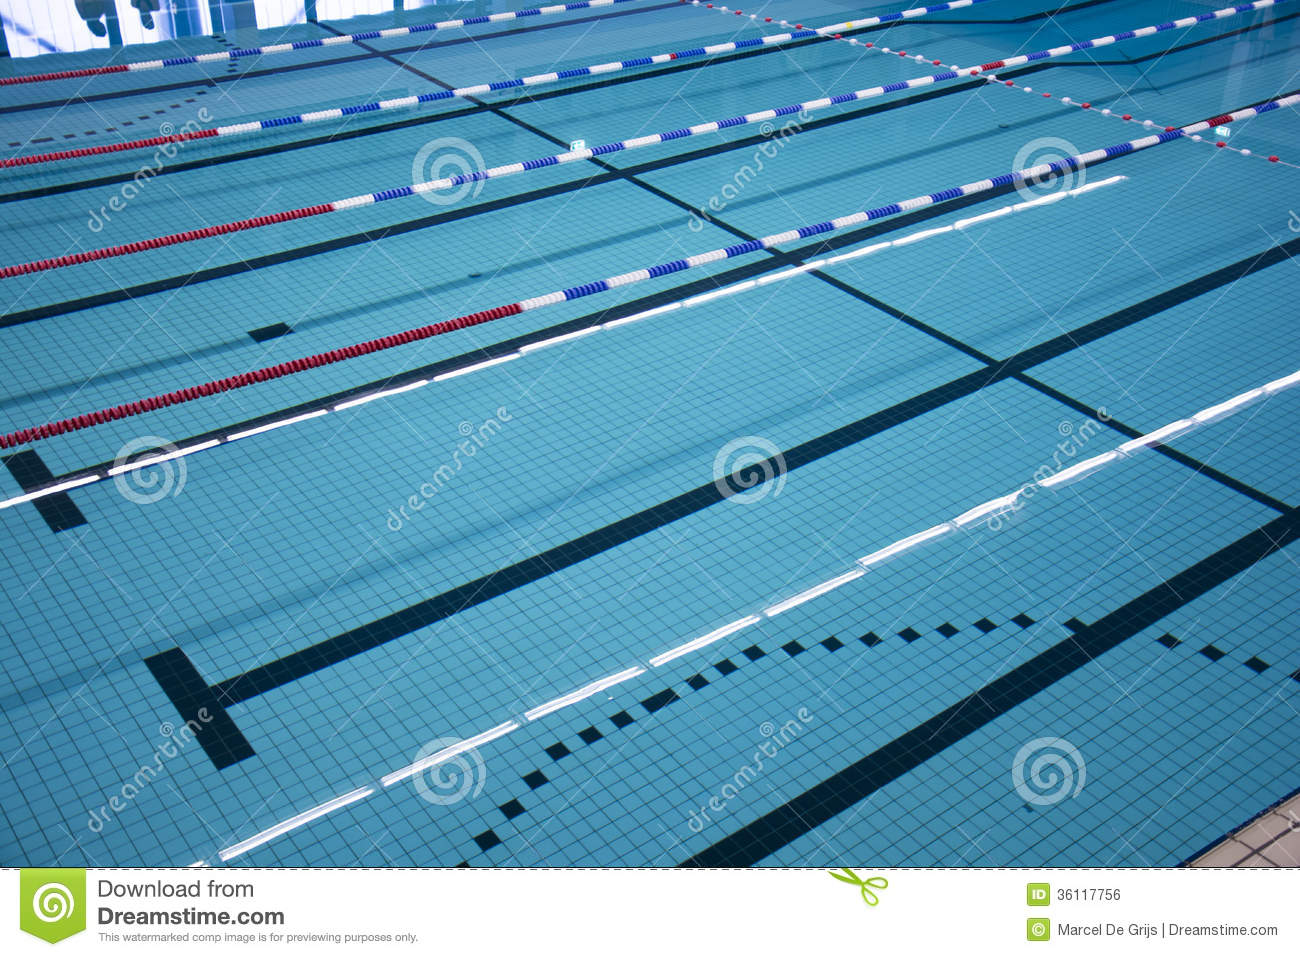 royalty free stock photo download swimming pool lanes - Olympic Swimming Pool Lanes